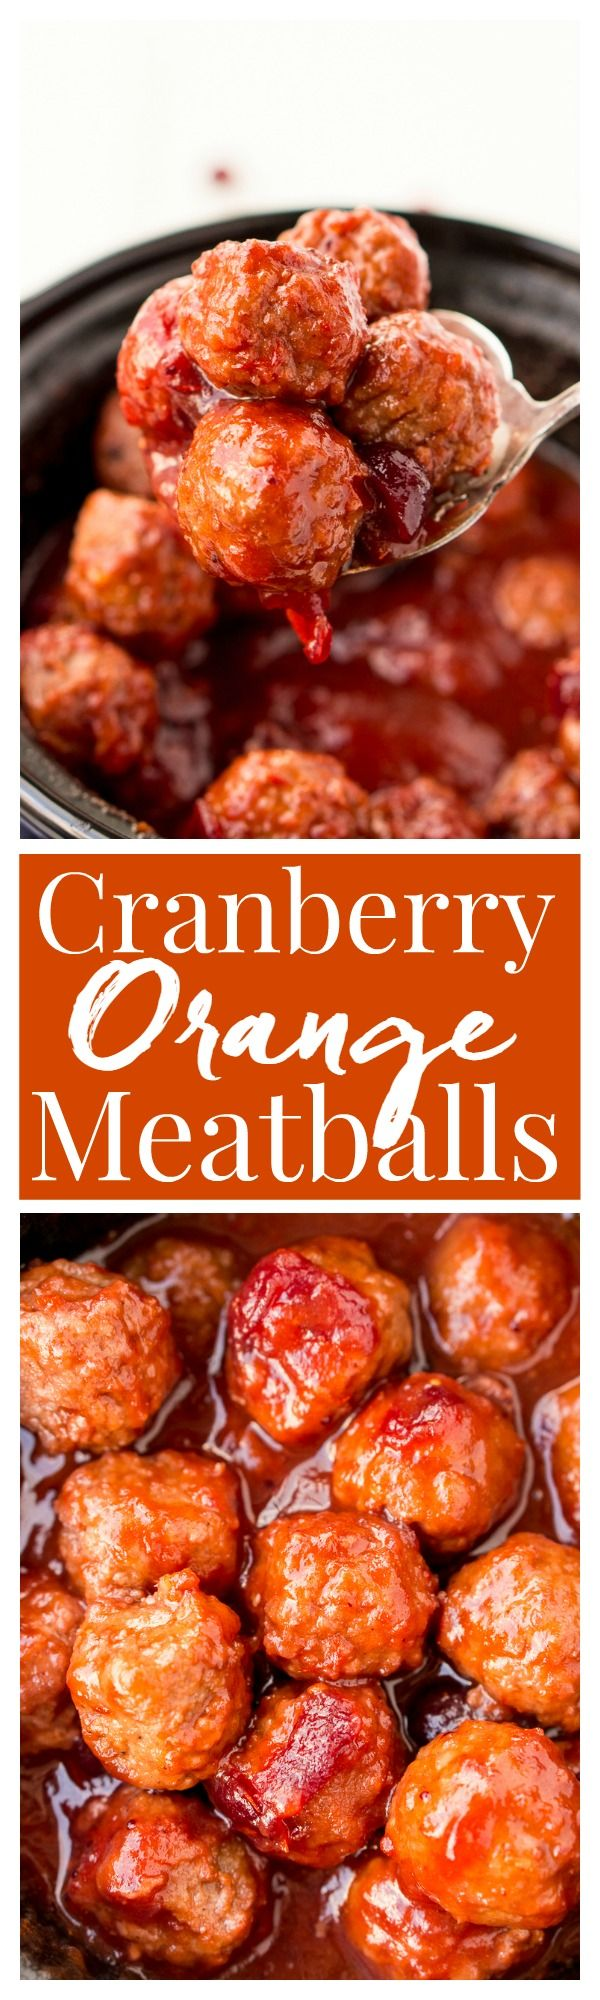 These Cranberry Orange Meatballs are made with just 4 ingredients with just 5 minutes of prep work! Let your crockpot take care of the rest and serve up this delicious appetizer at your holiday and game day parties!